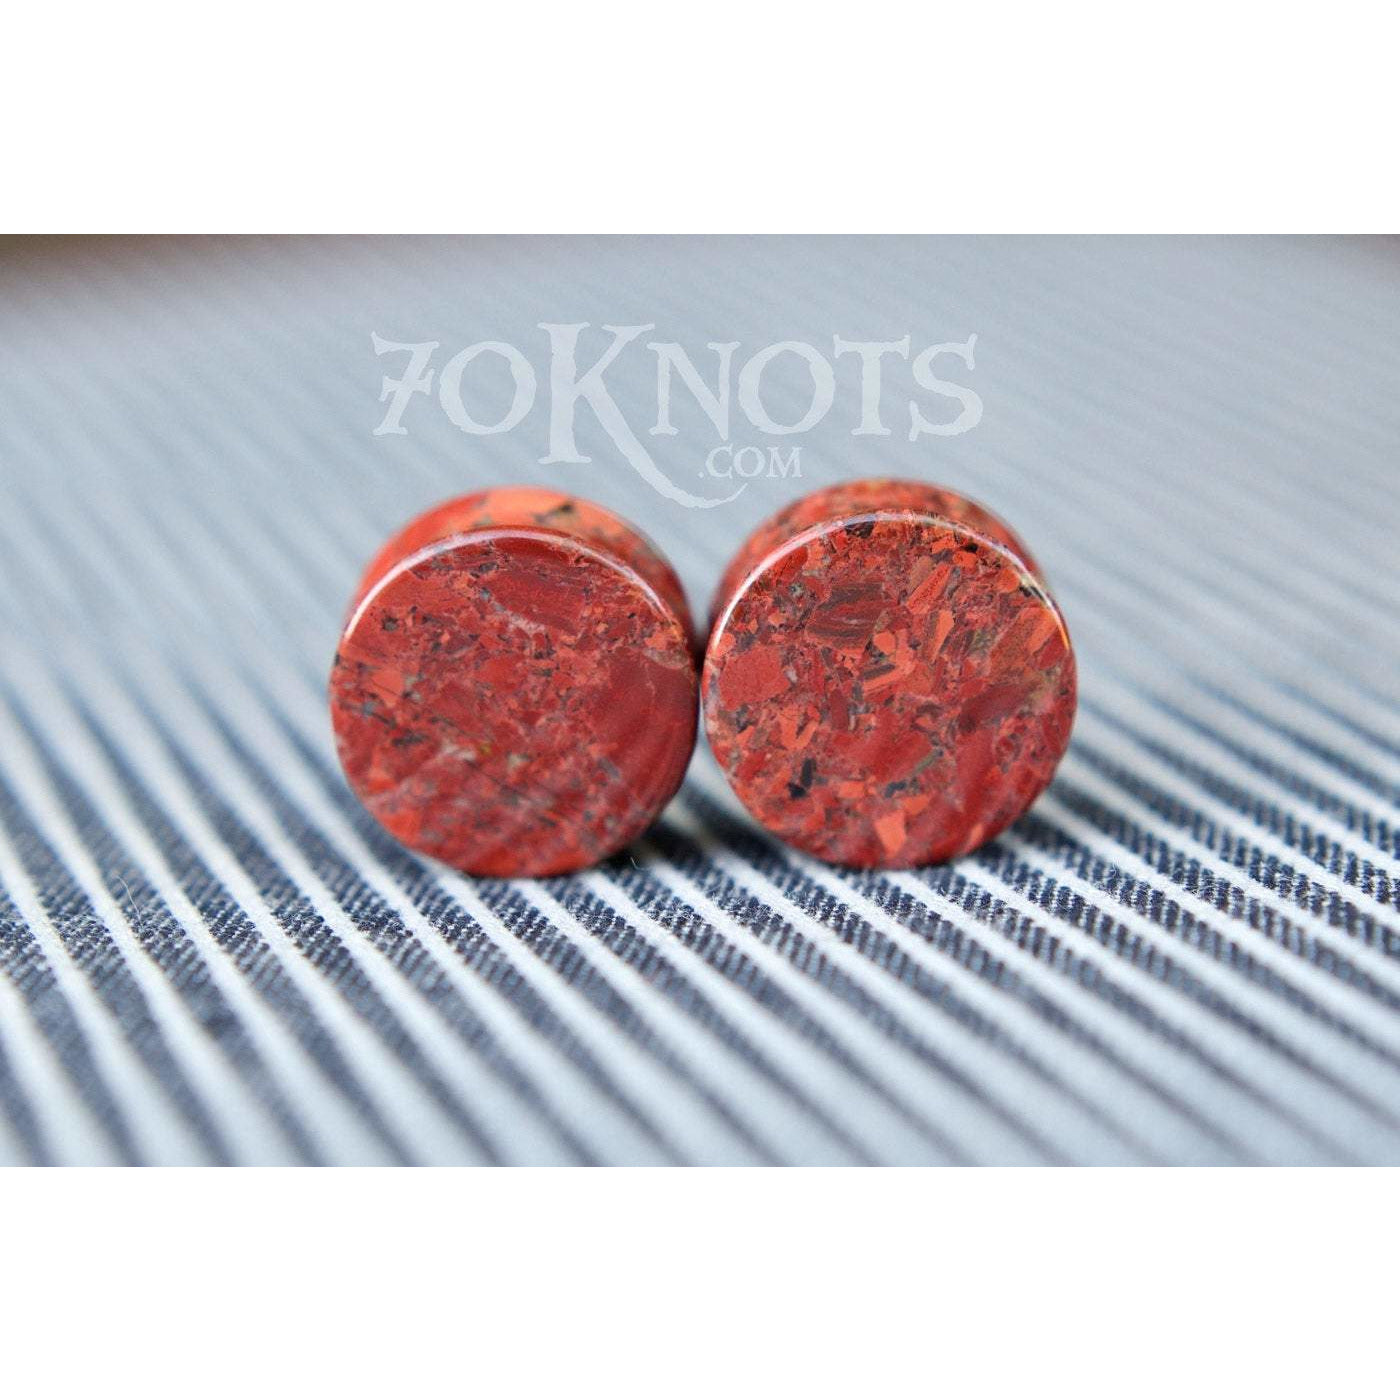 Poppy Jasper Double Flared Plugs, Pair - 70 Knots